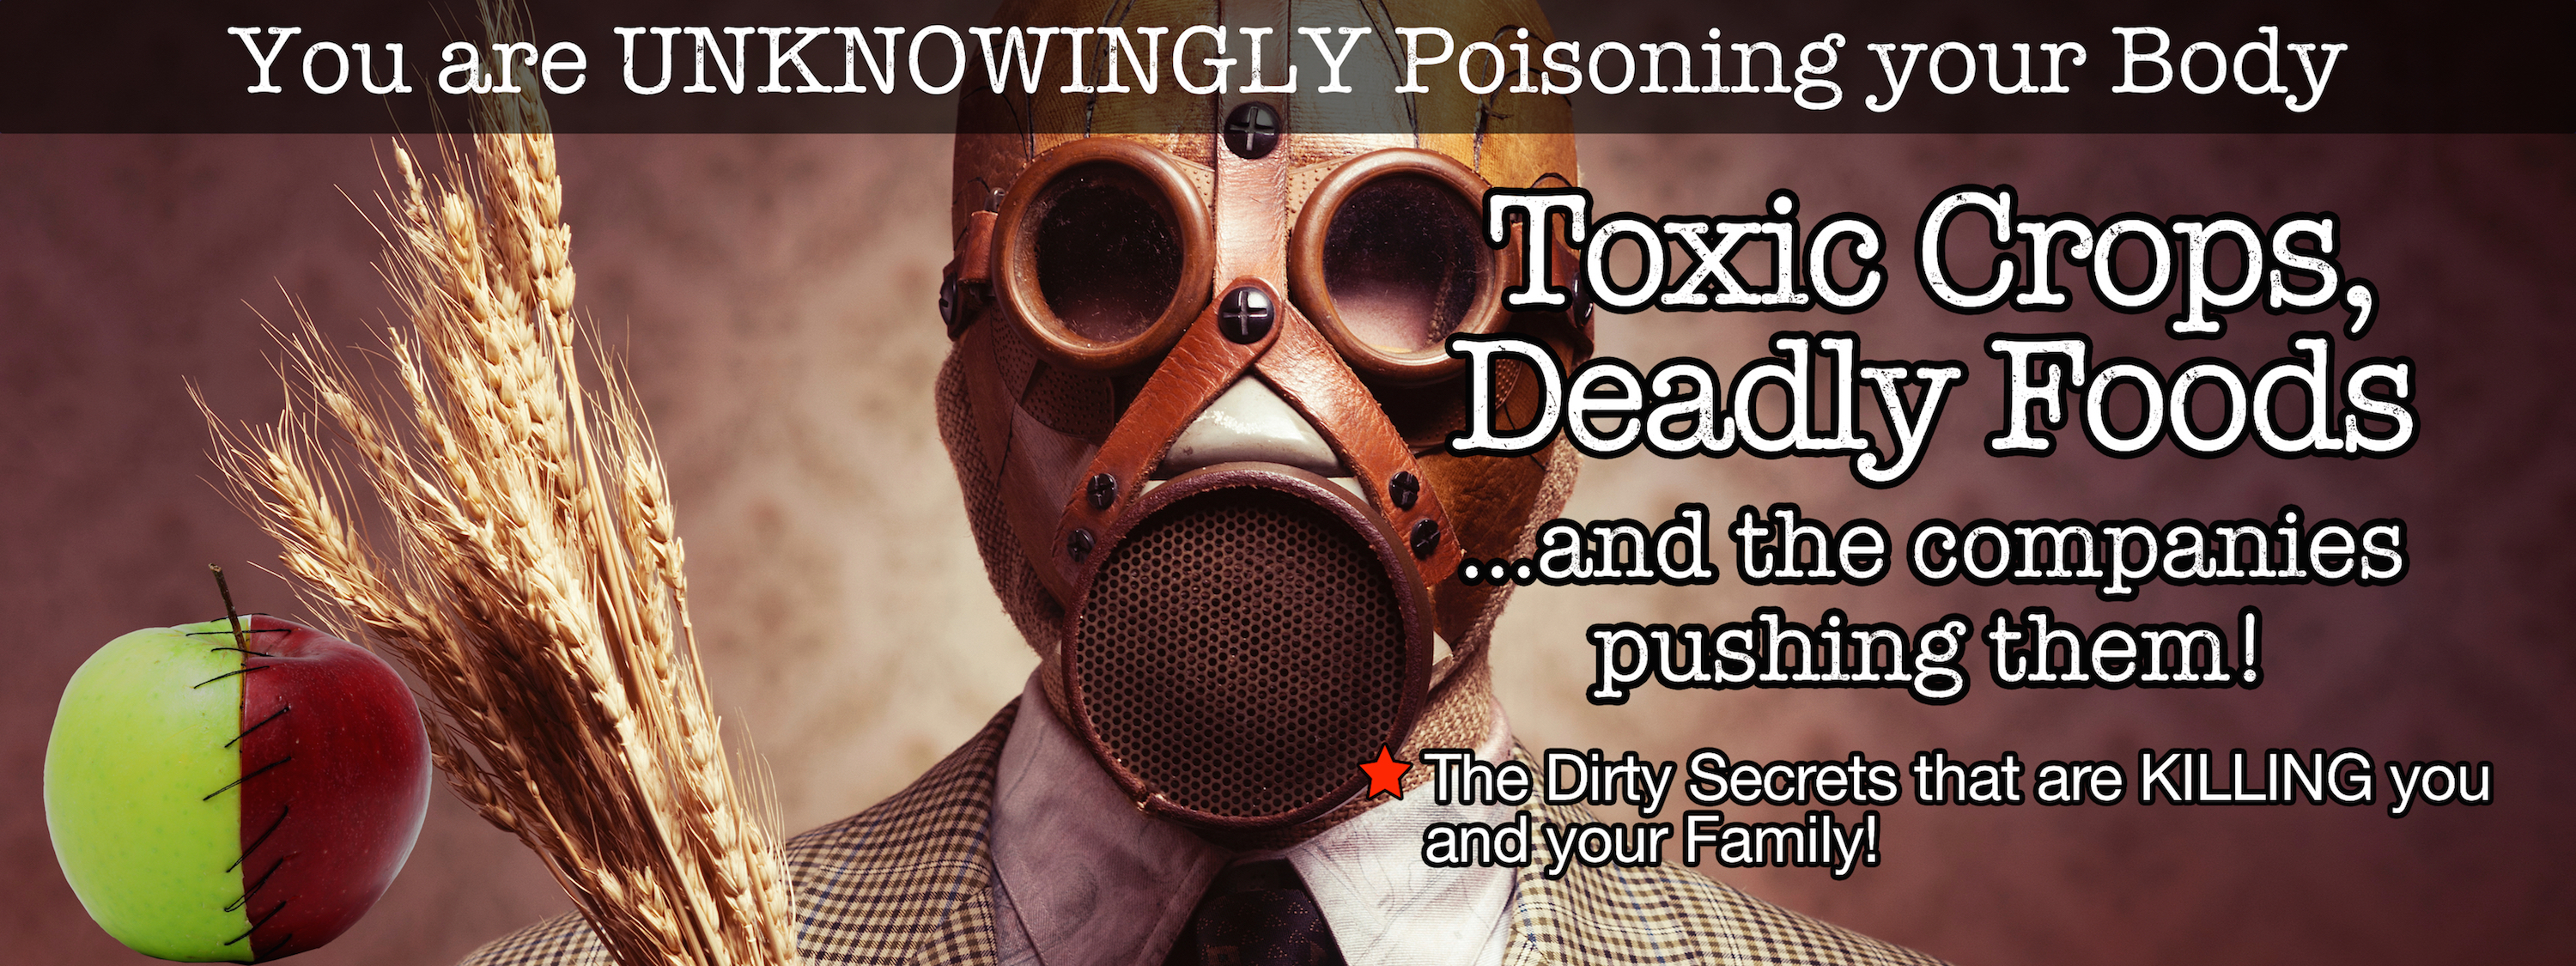 deadly foods and gmo crops